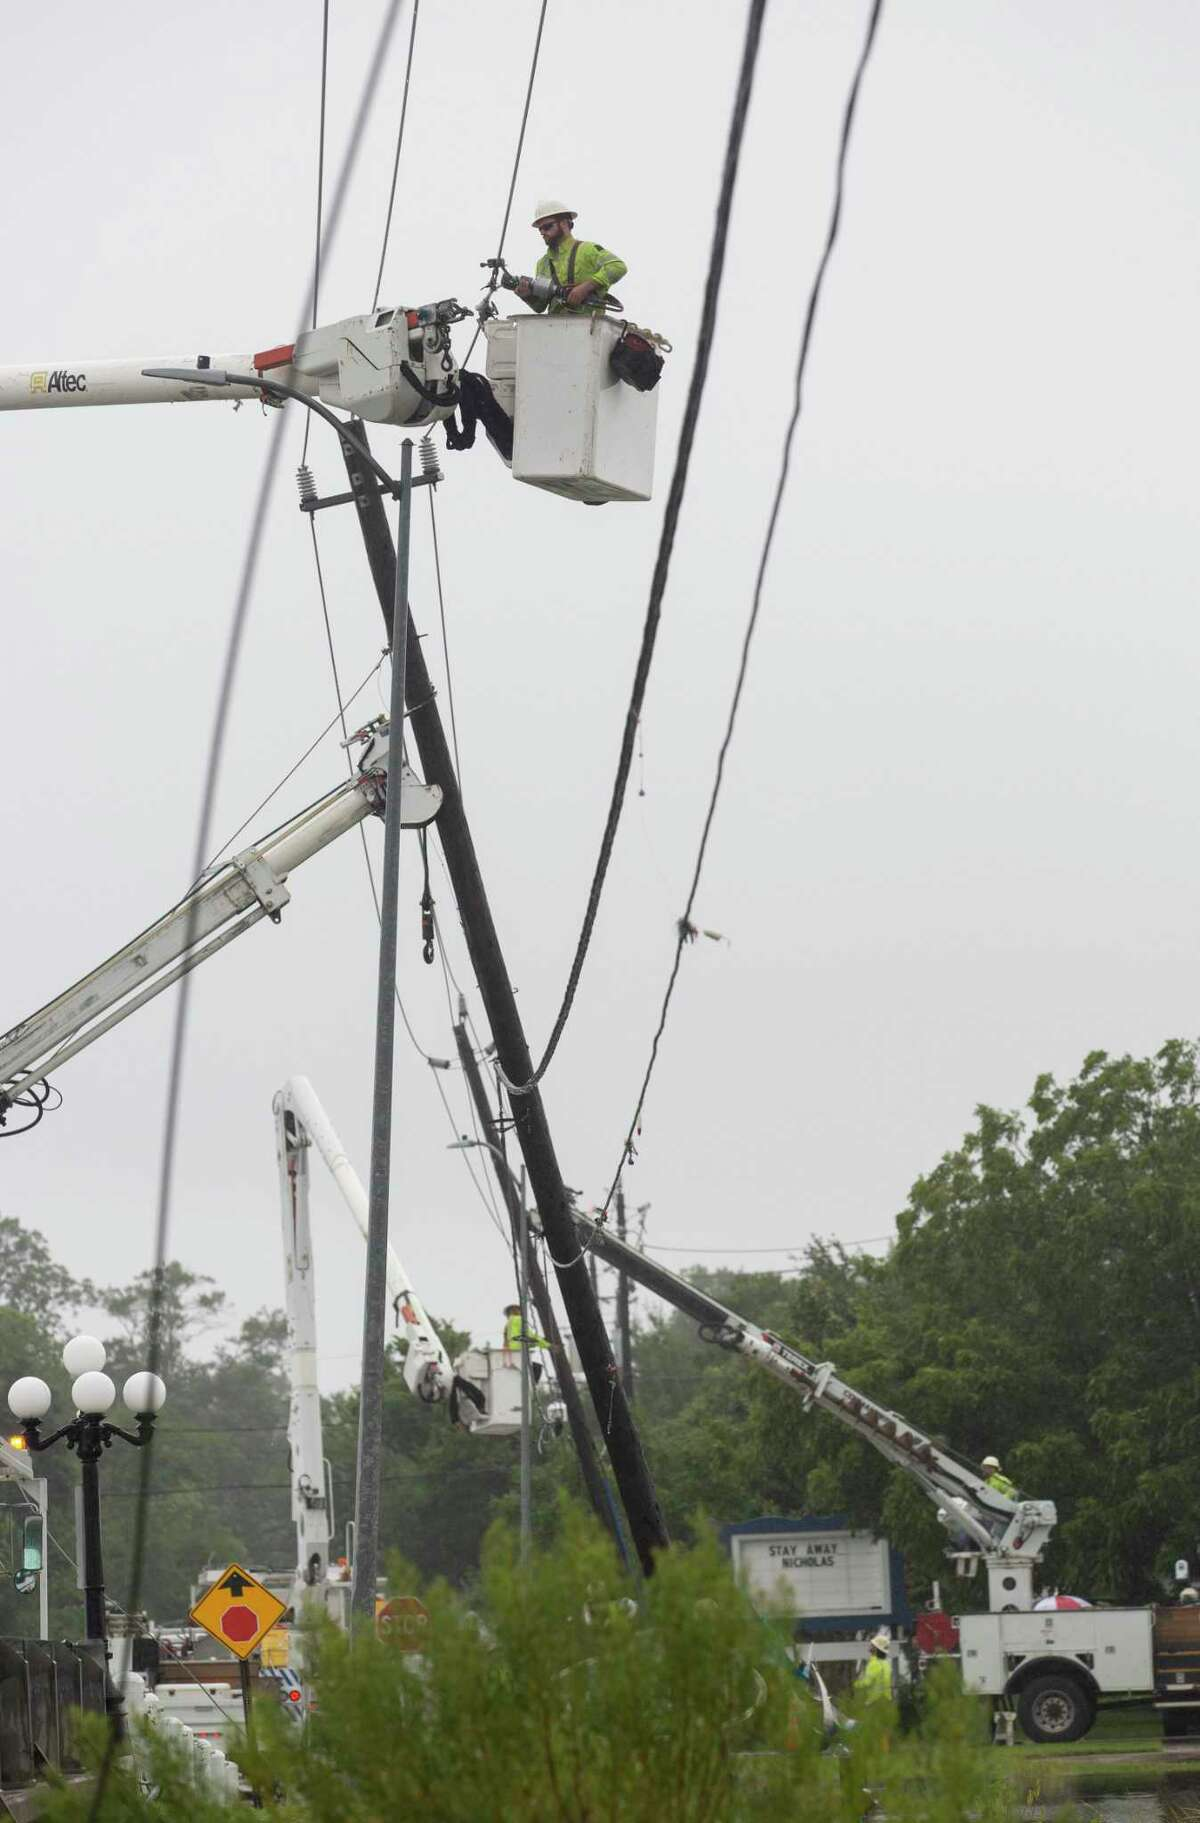 Workers repairing a downed power line on Clear Lake Road Tuesday, Sept. 14, 2021, in Clear Lake Shore, Texas. (Yi-Chin Lee/Houston Chronicle via AP)